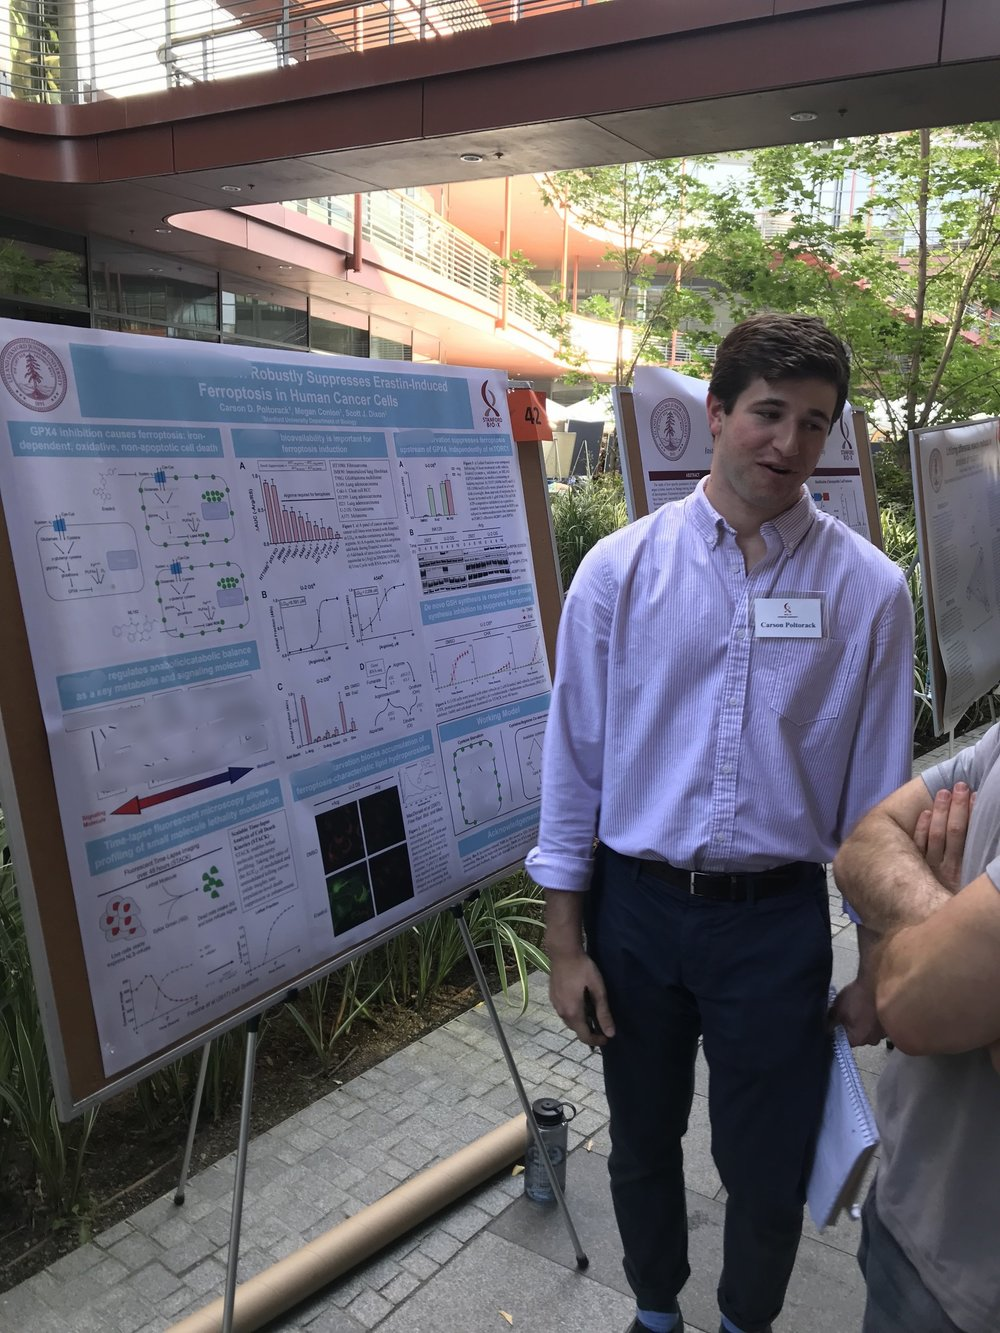 Carson presents his work at the Bio-X summer symposium - 22 August 2018